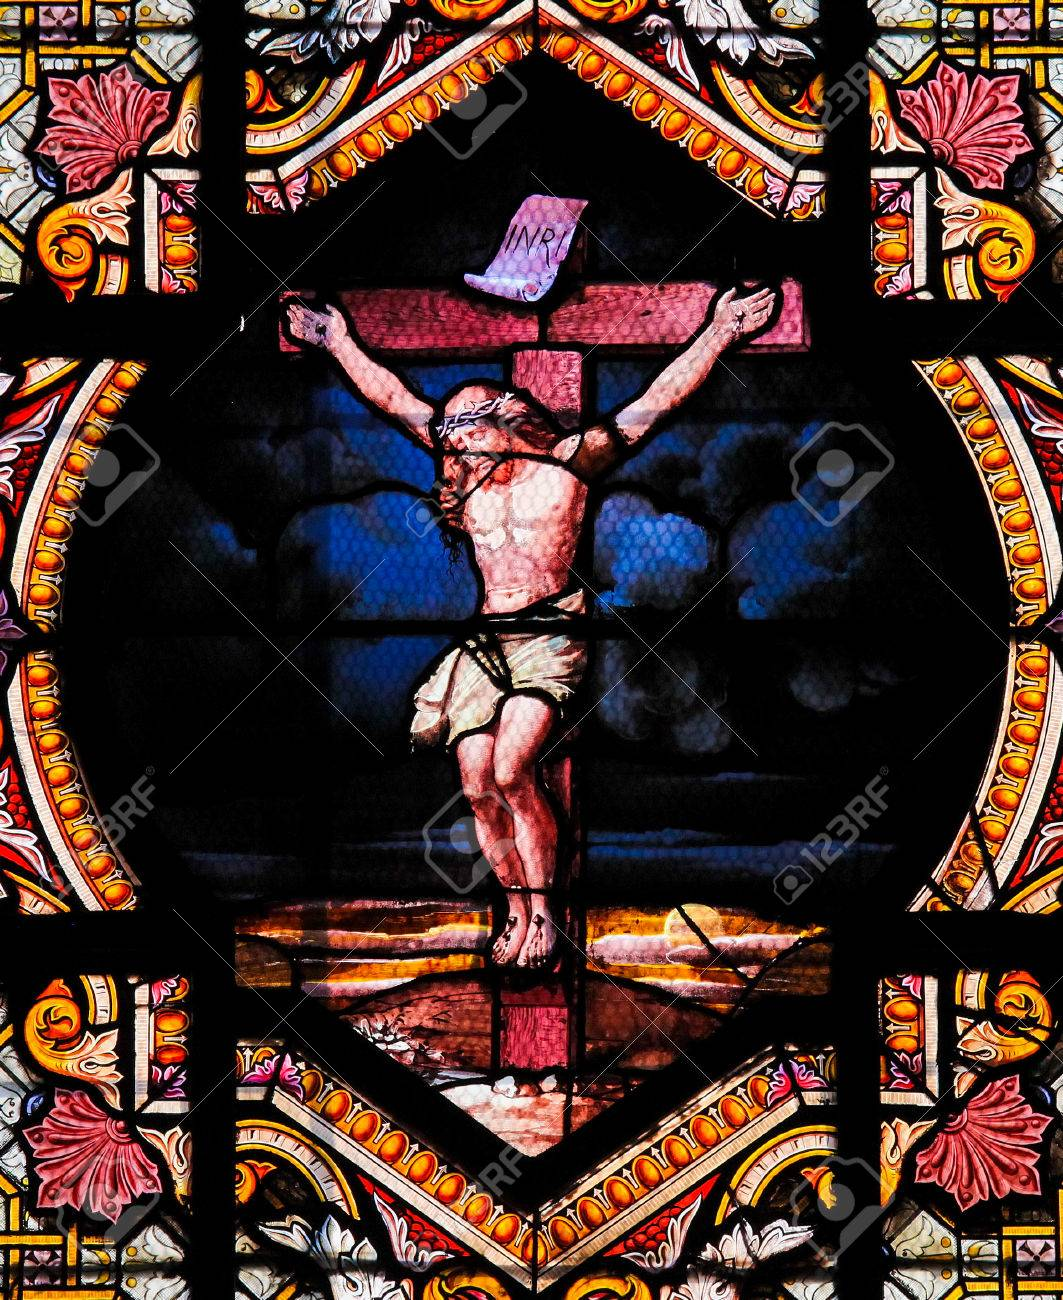 Stained Glass Window Depicting Jesus Christ On The Cross In Saint Sulpice Church Paris